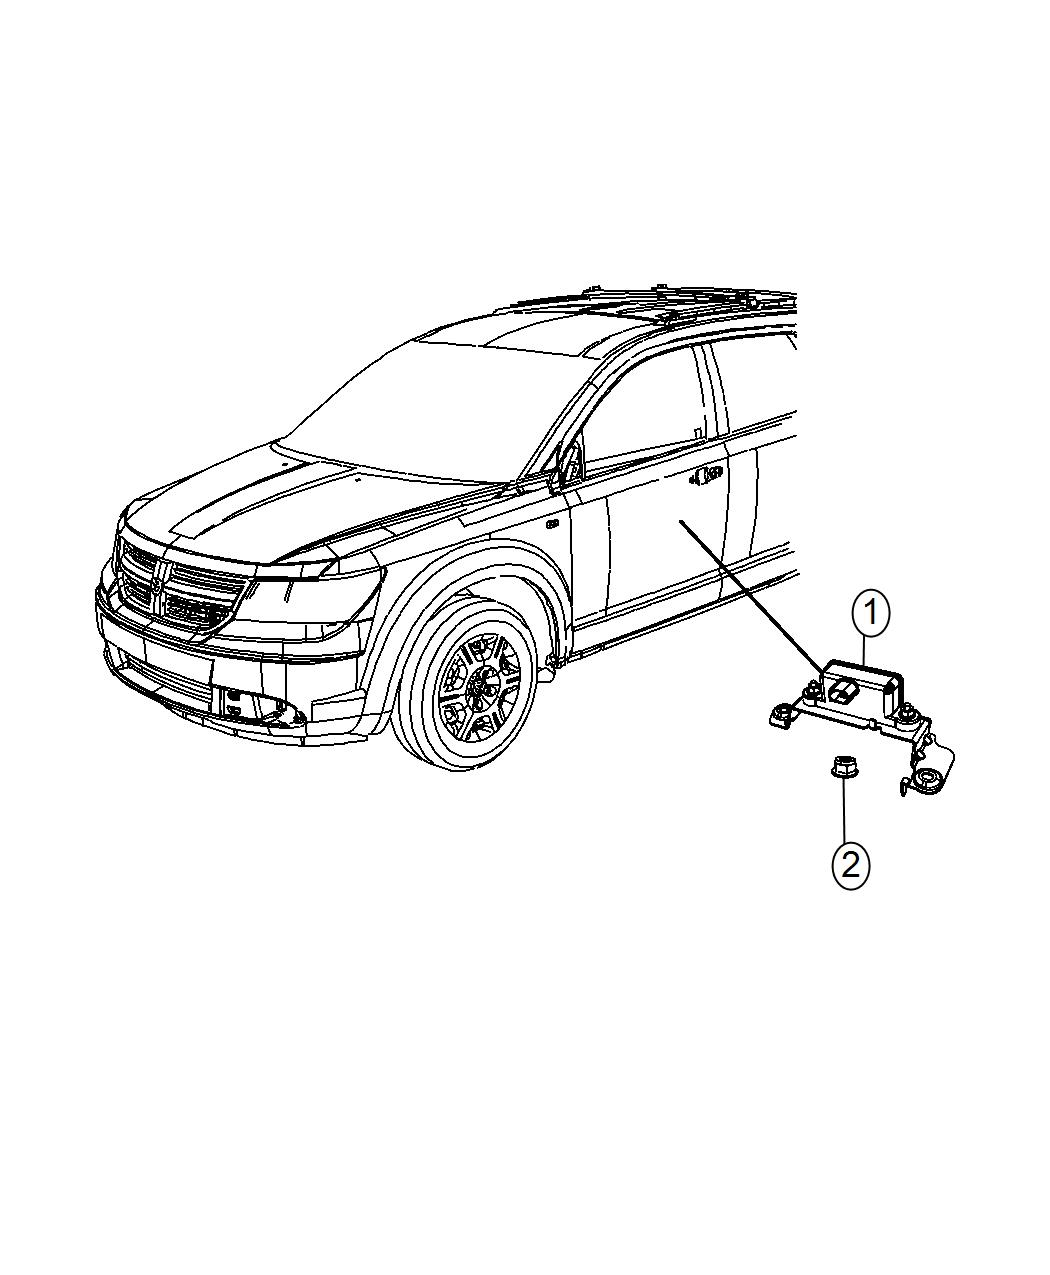 Dodge Journey Sensor Dynamics Used For Lateral